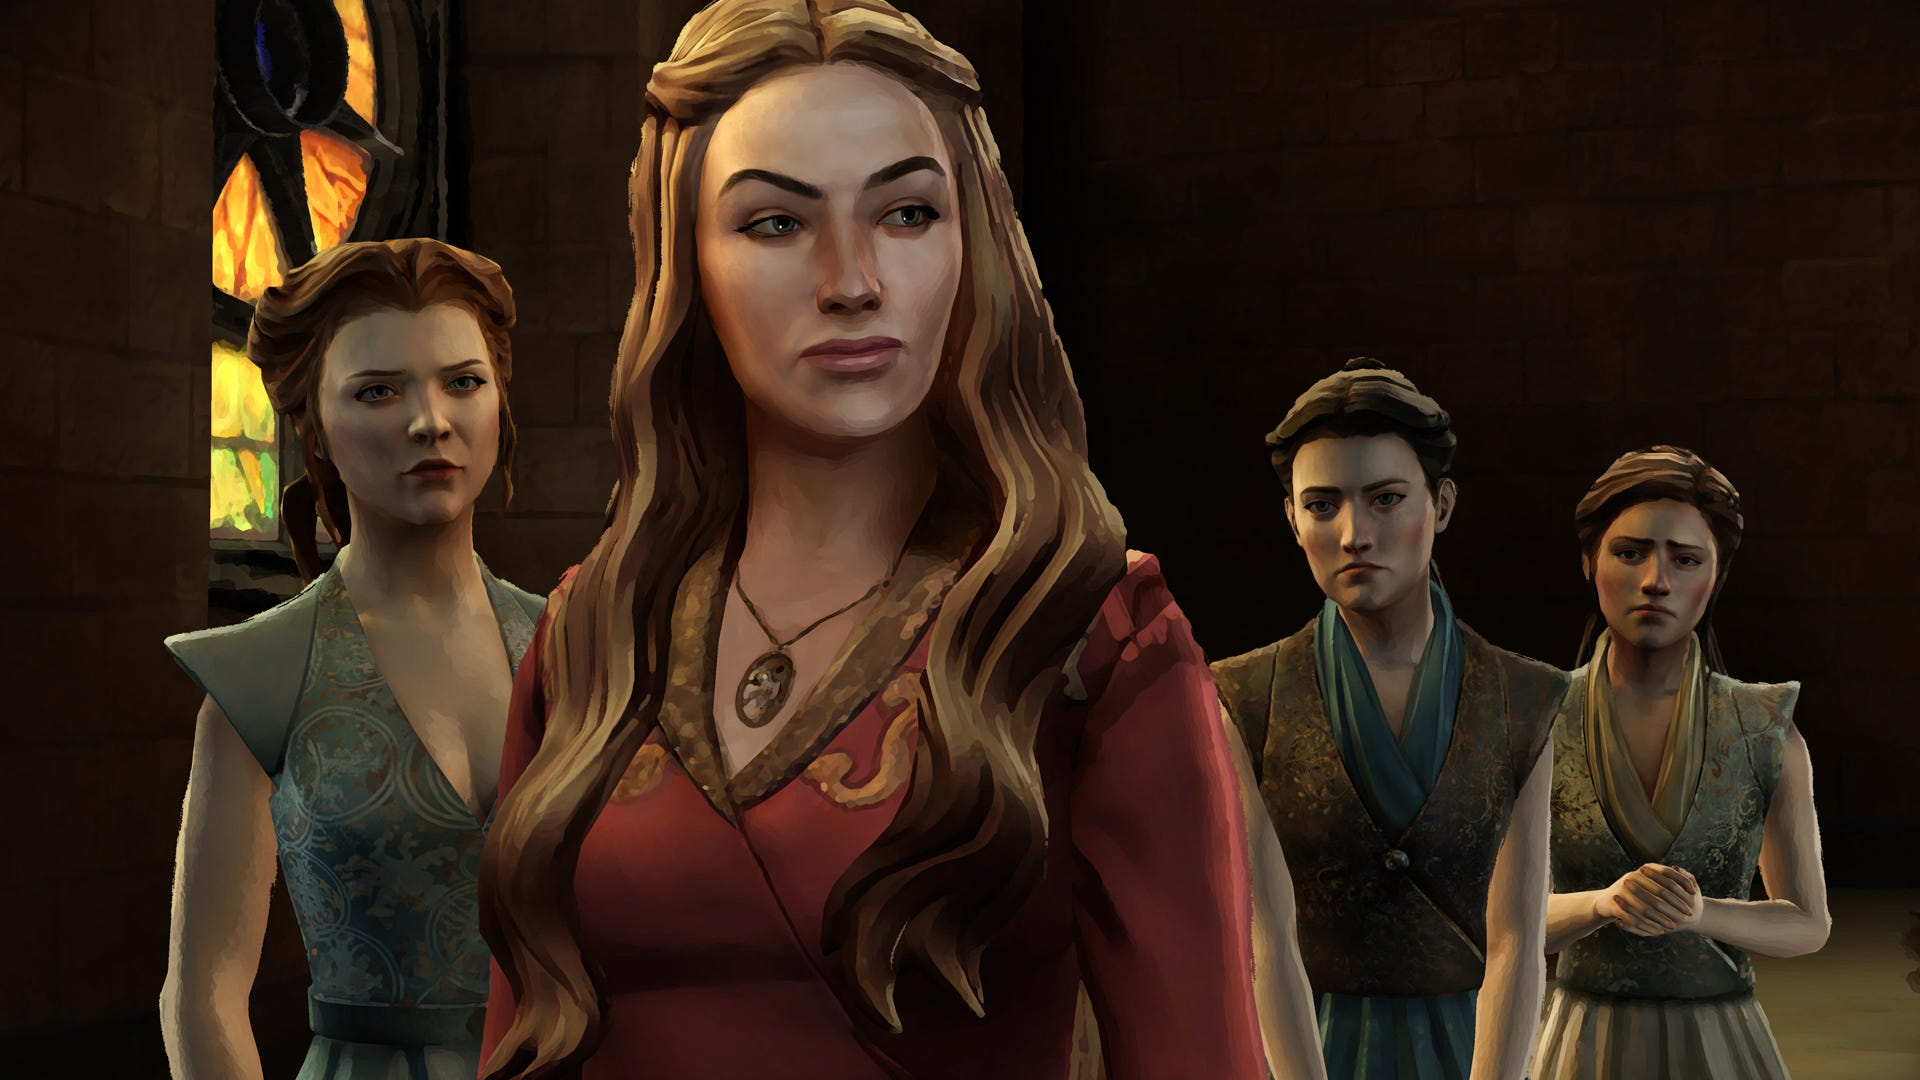 The official Telltale series gives you a fun side story to the main show.